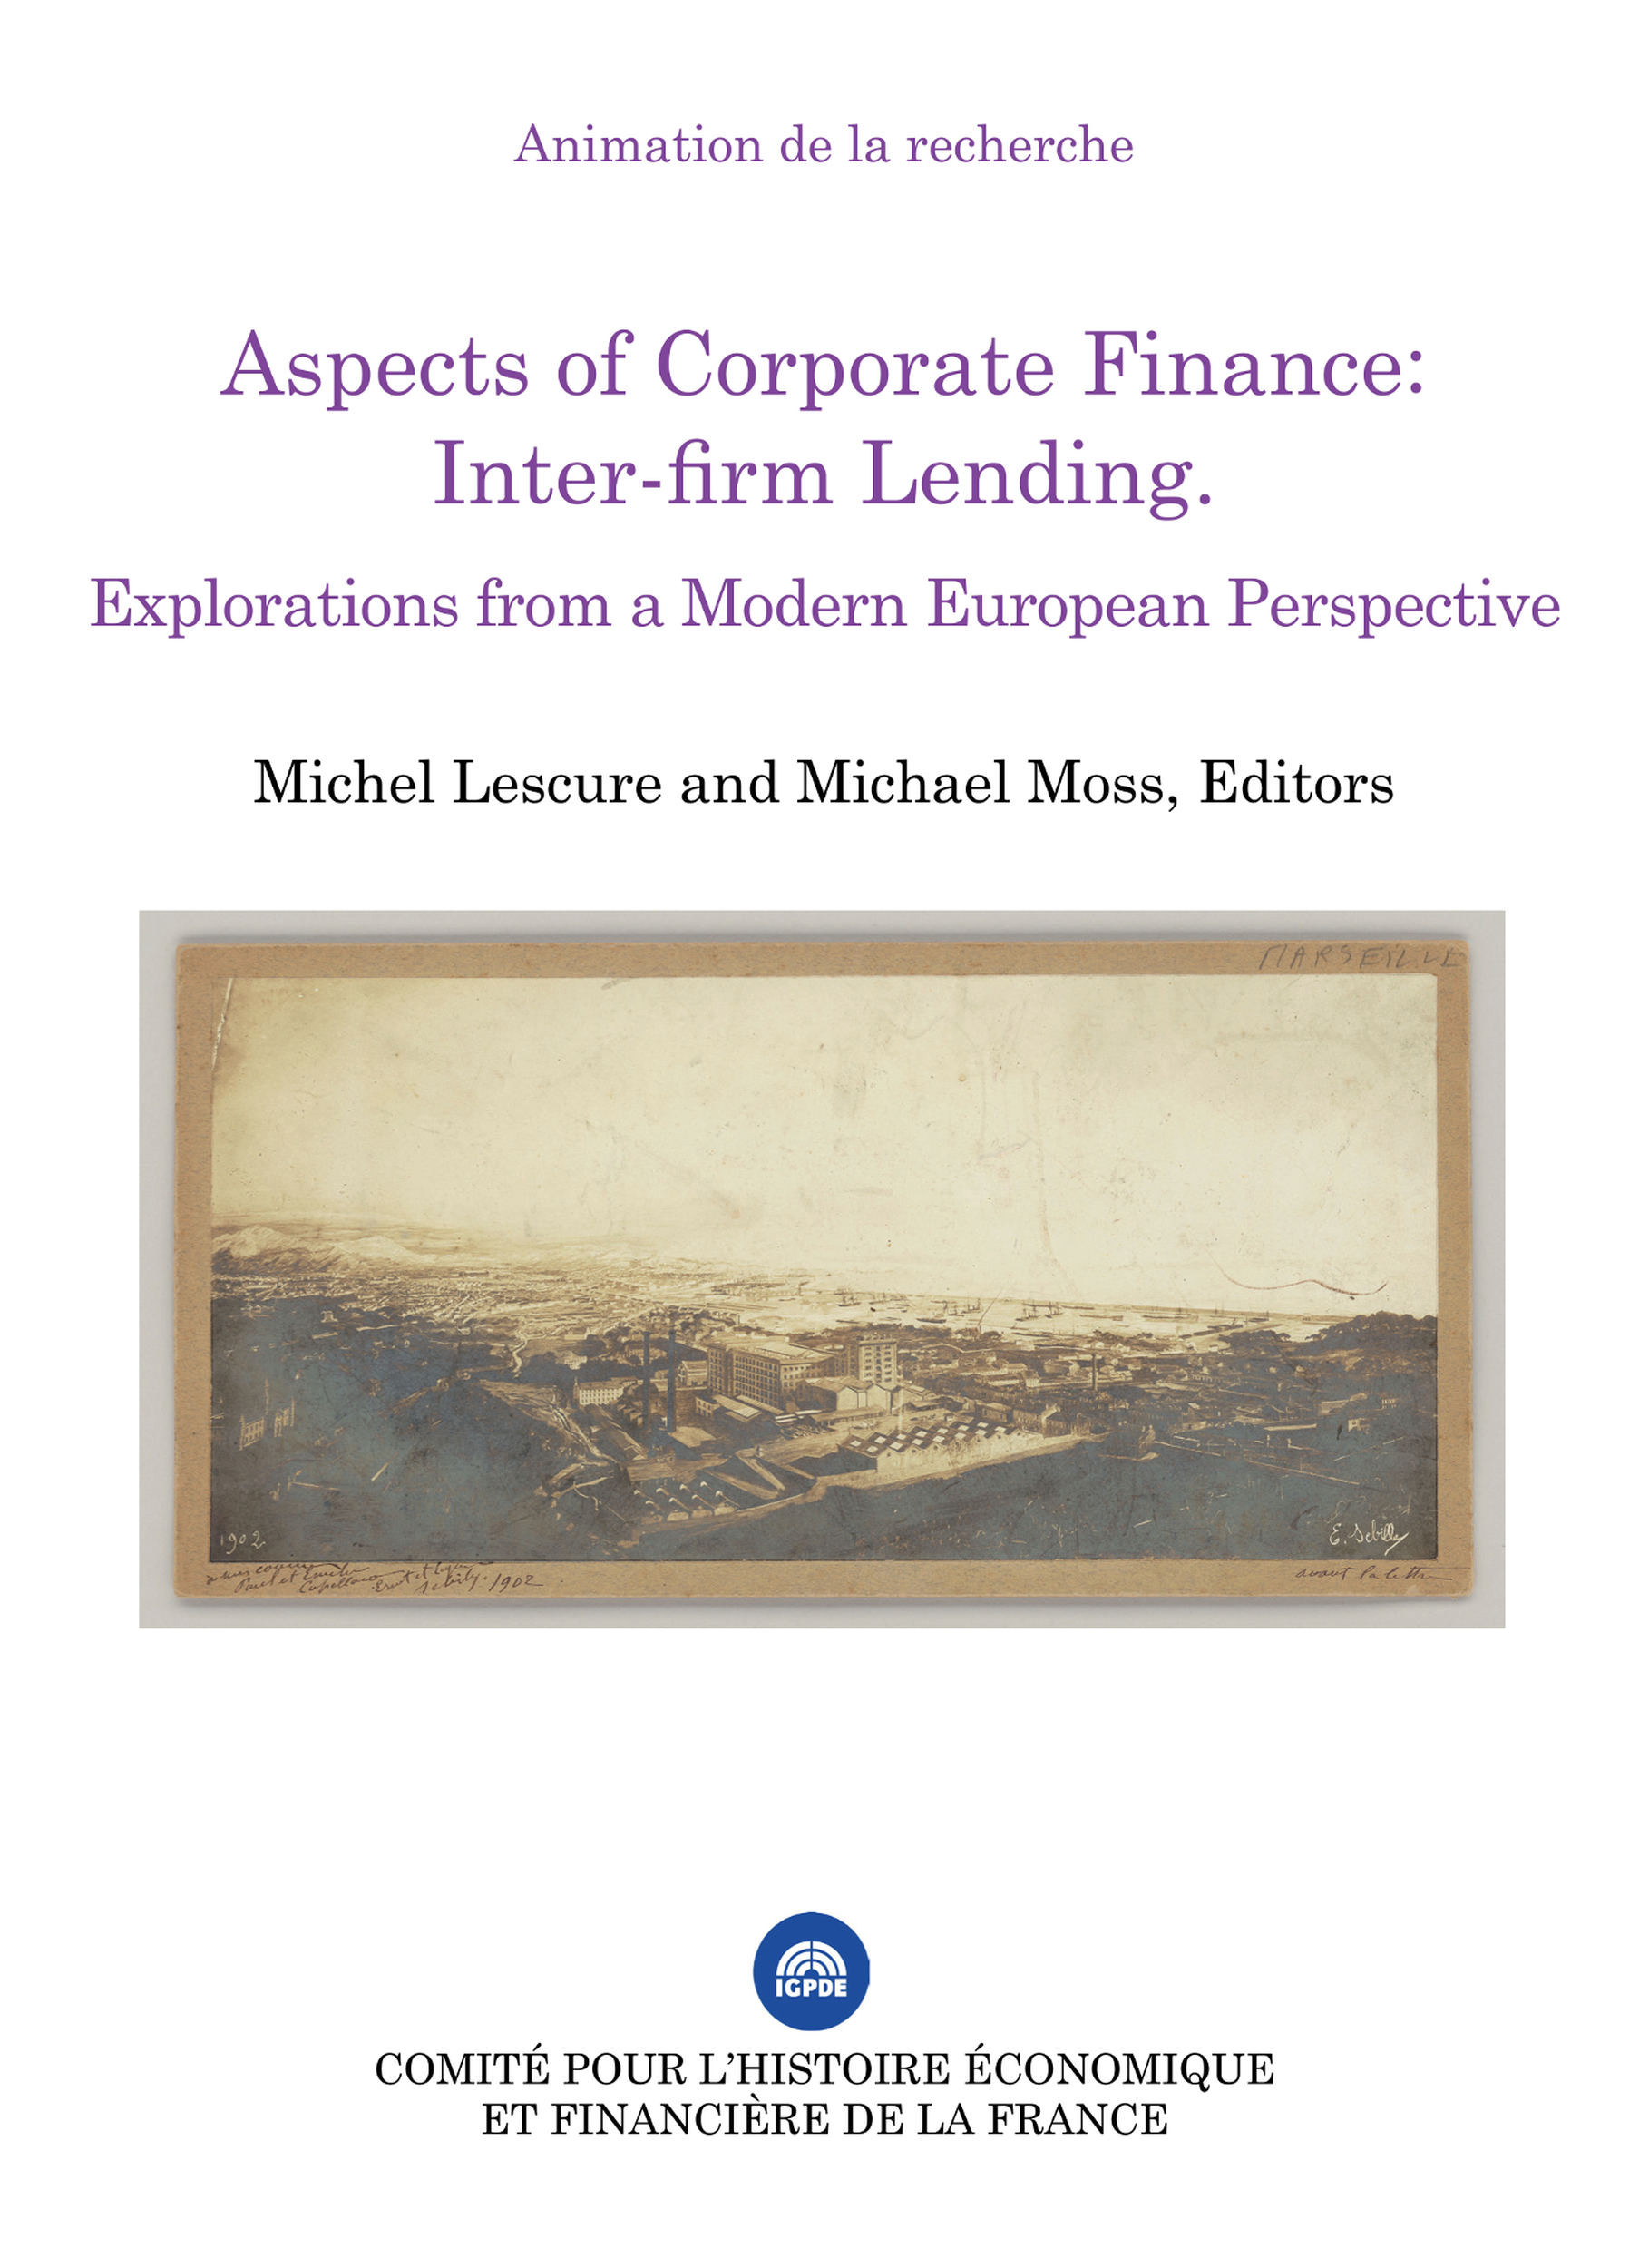 Inter-Firm Credit in Maritime Europe. Greek-owned Shipping Business, 19th and 20th centuries